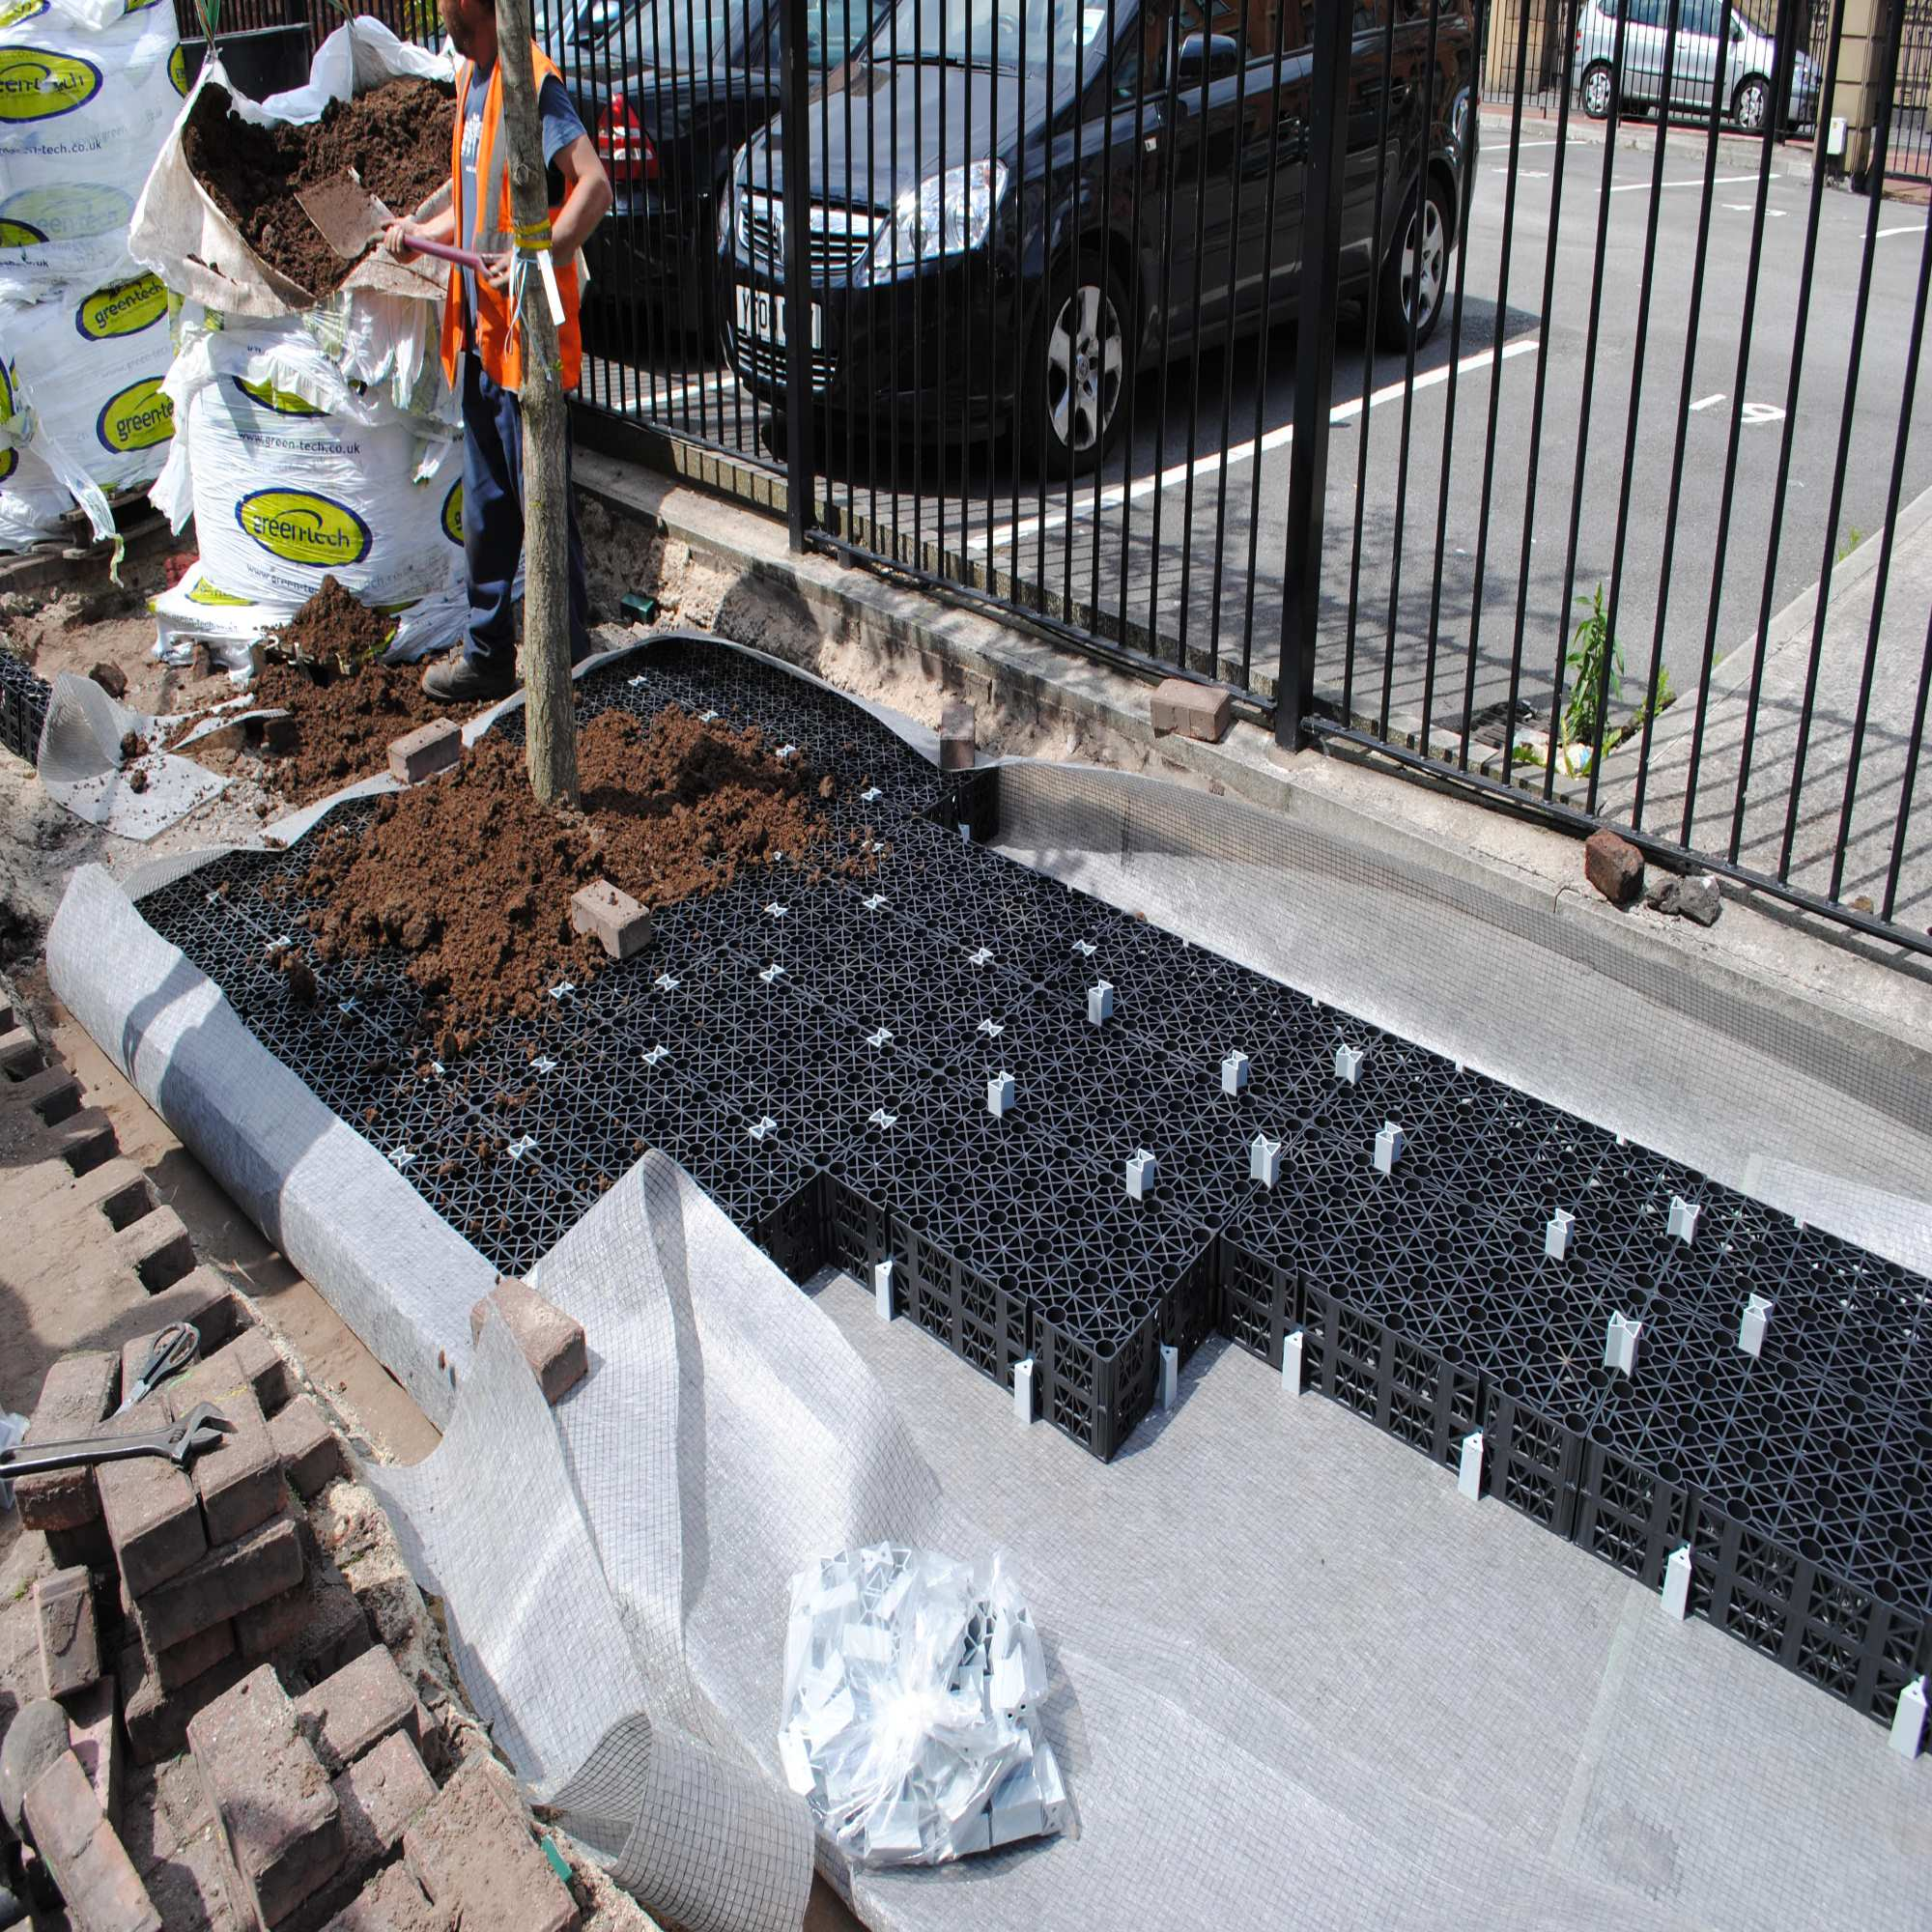 Arborraft being installed in Chepstow Street, Manchester